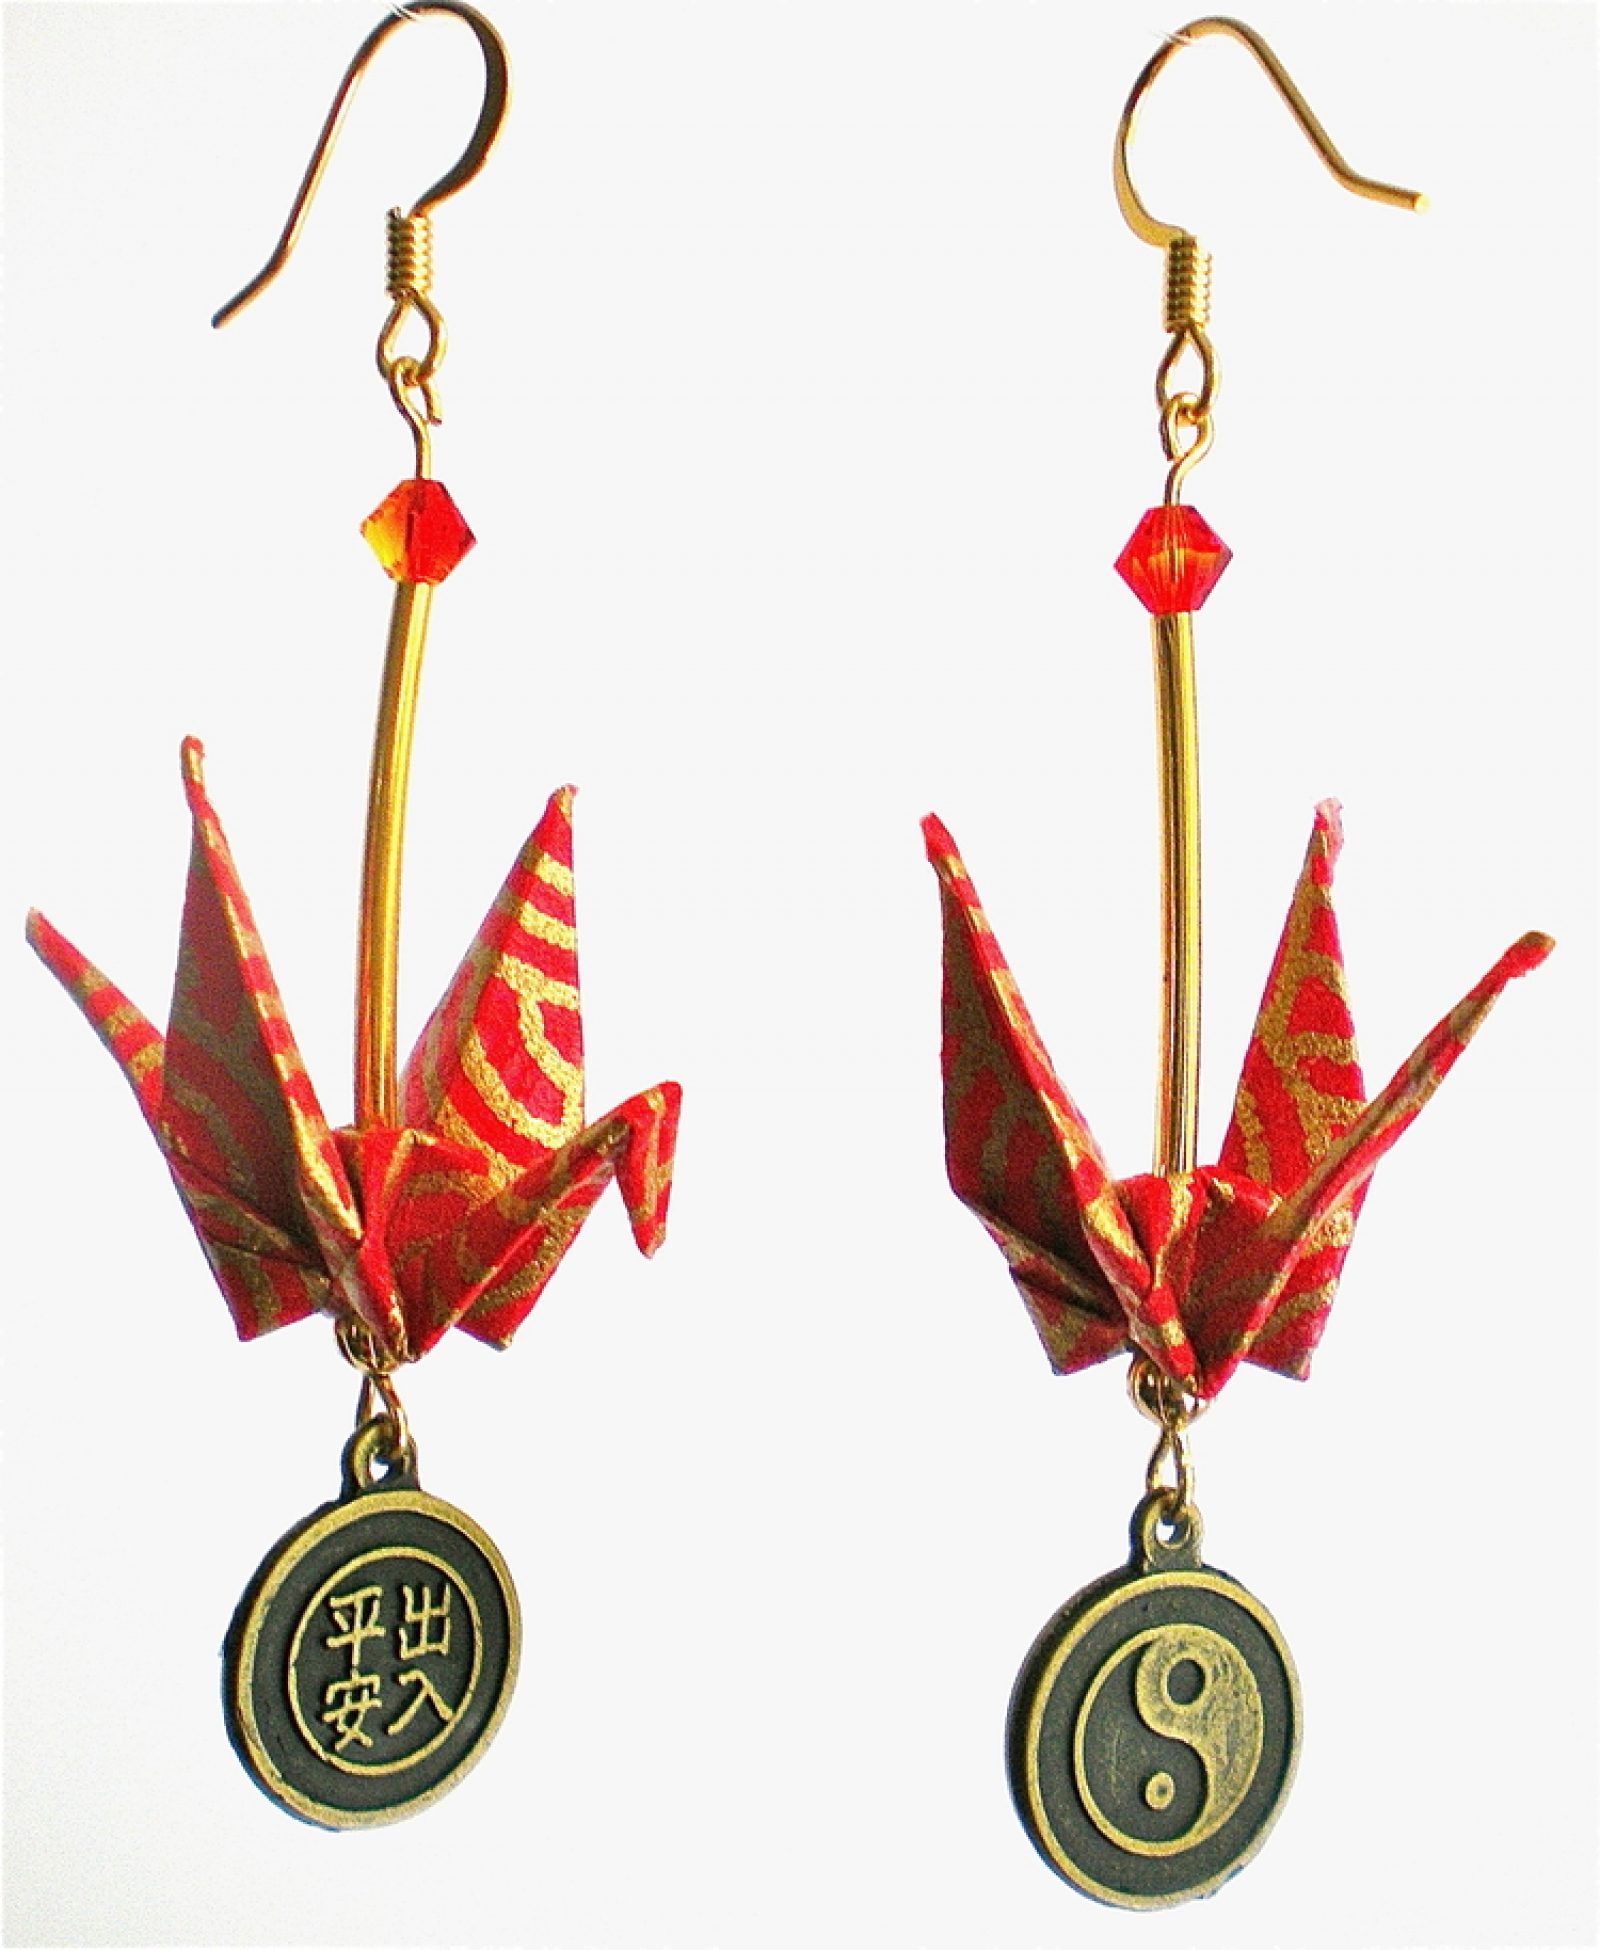 Finest Red Gold Origami Crane Earrings with Peace & Safety Asian Charm  QH32